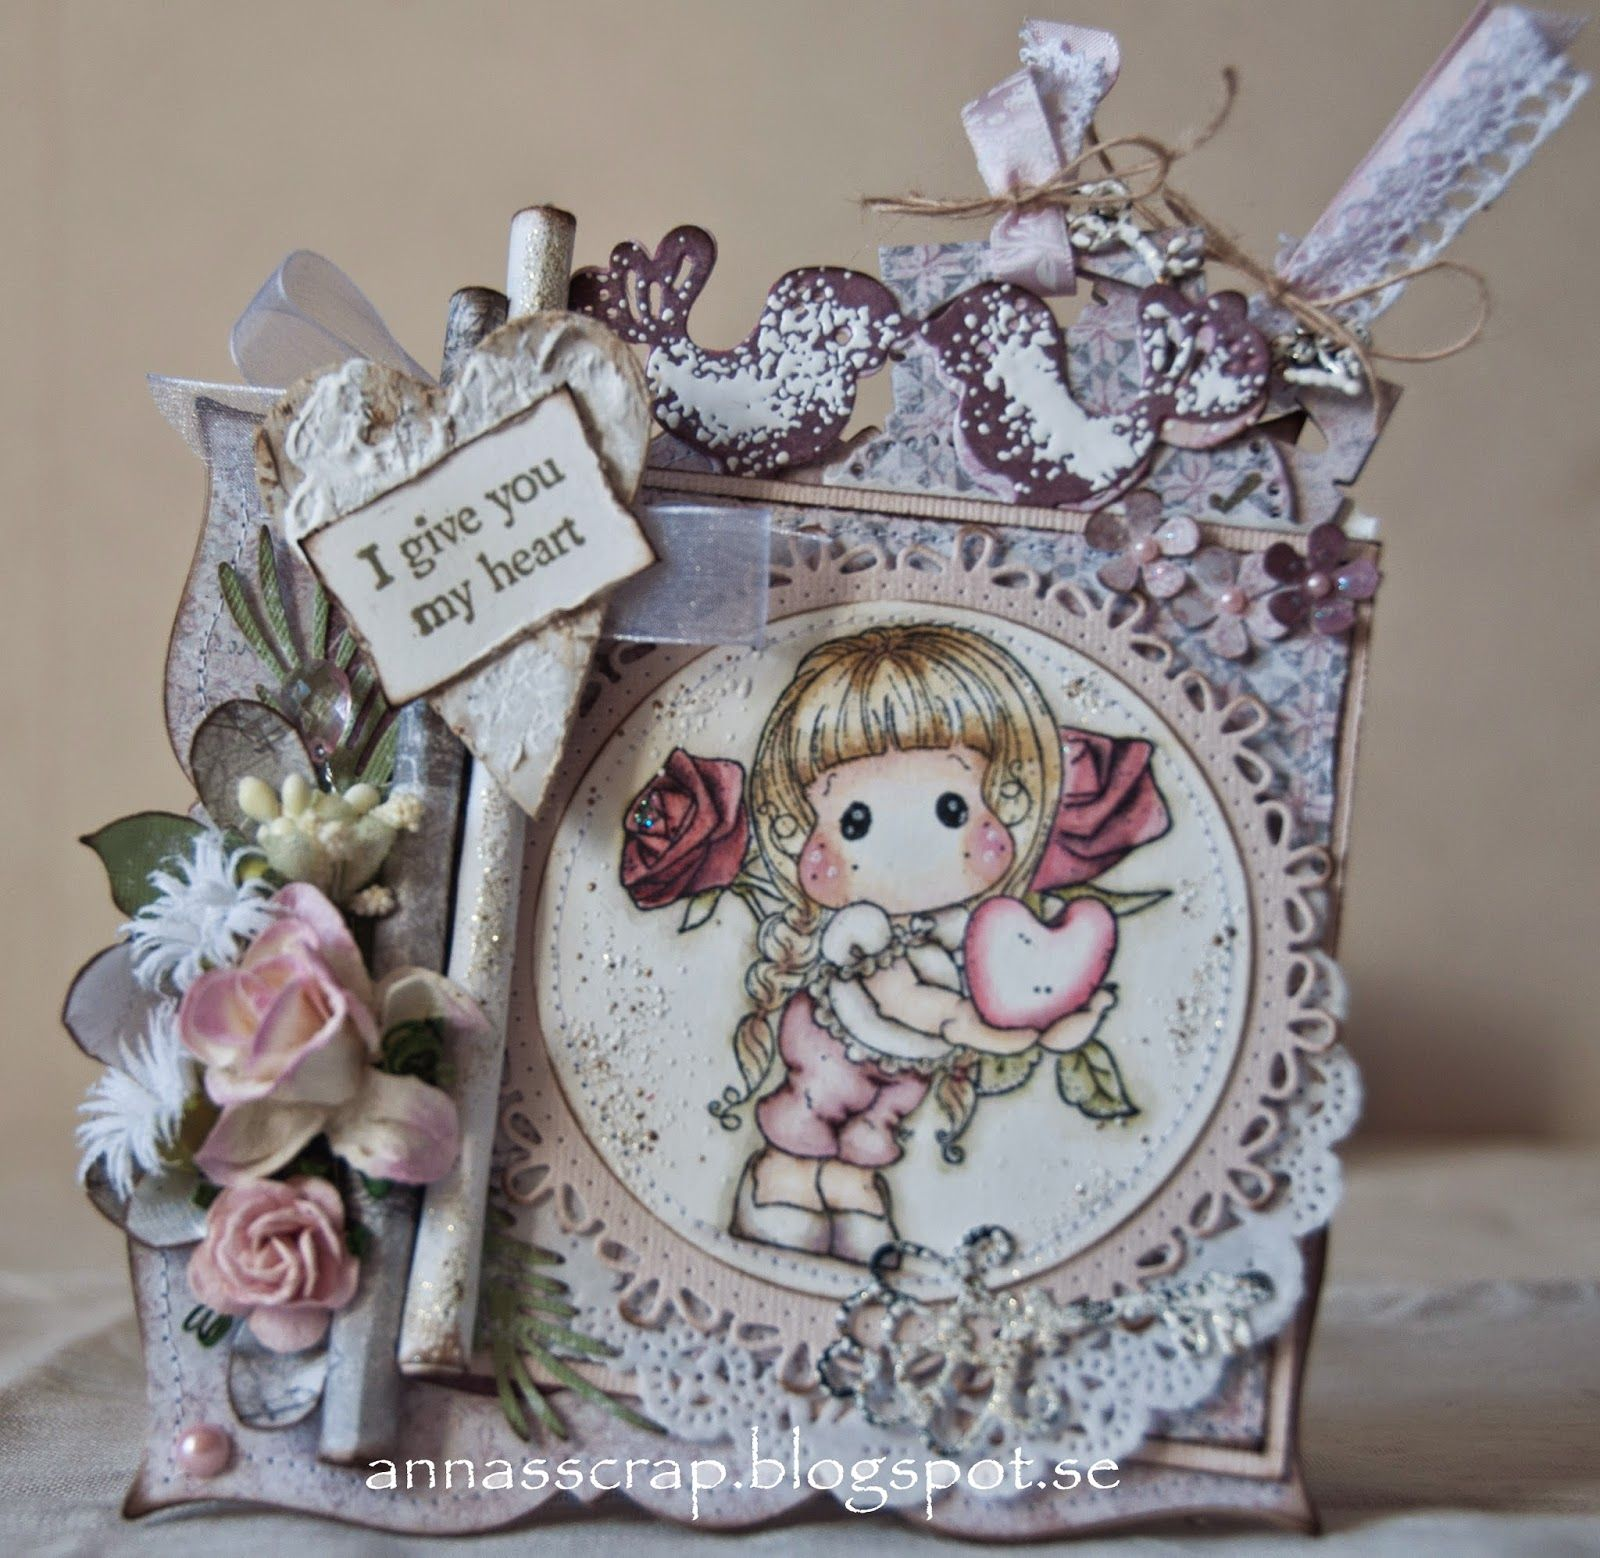 Annas scrap: I give you my heart Tilda & Lovely rose